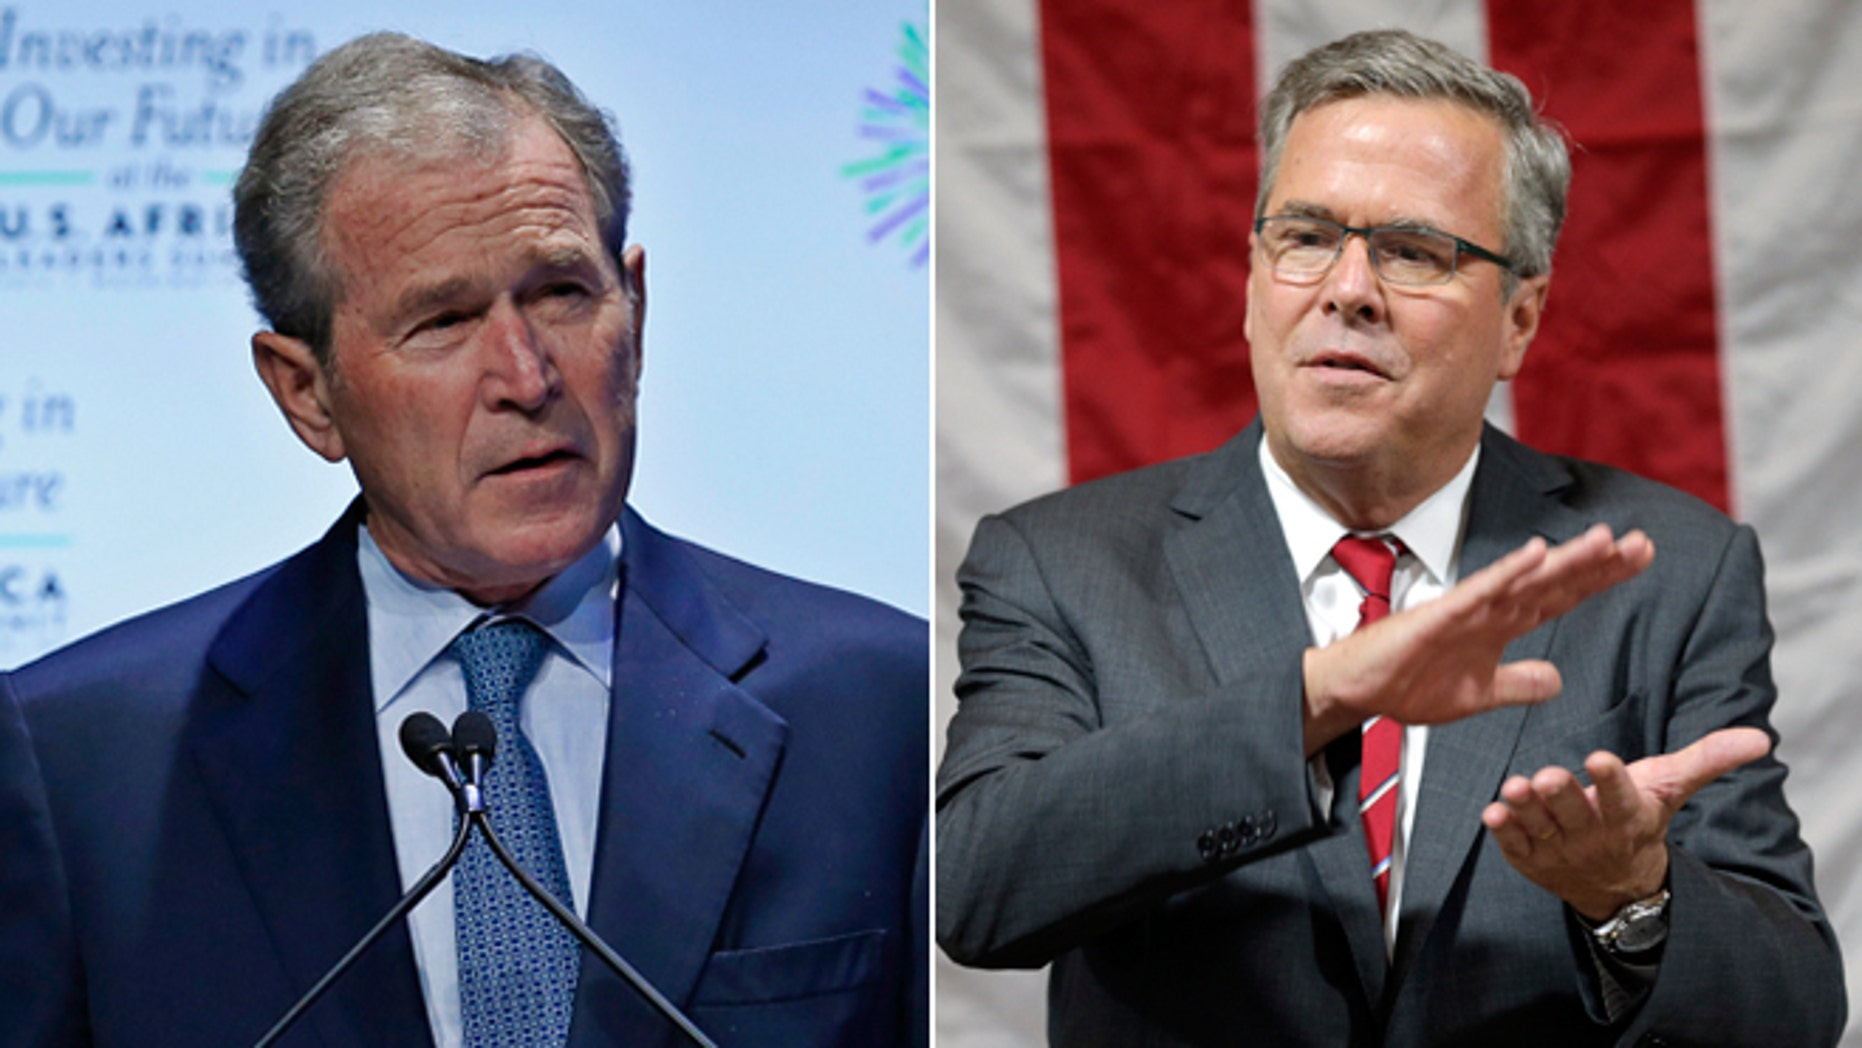 """In this Aug. 6, 2014 photo, former U.S. President George W. Bush speaks at the """"Investing in Our Future"""" forum at the US-Africa Leaders Summit in Washington and former Florida Gov. Jeb Bush speaks during an event in Greensboro, N.C. on Wednesday, Sept. 24, 2014. (AP Photo/Chuck Burton)"""